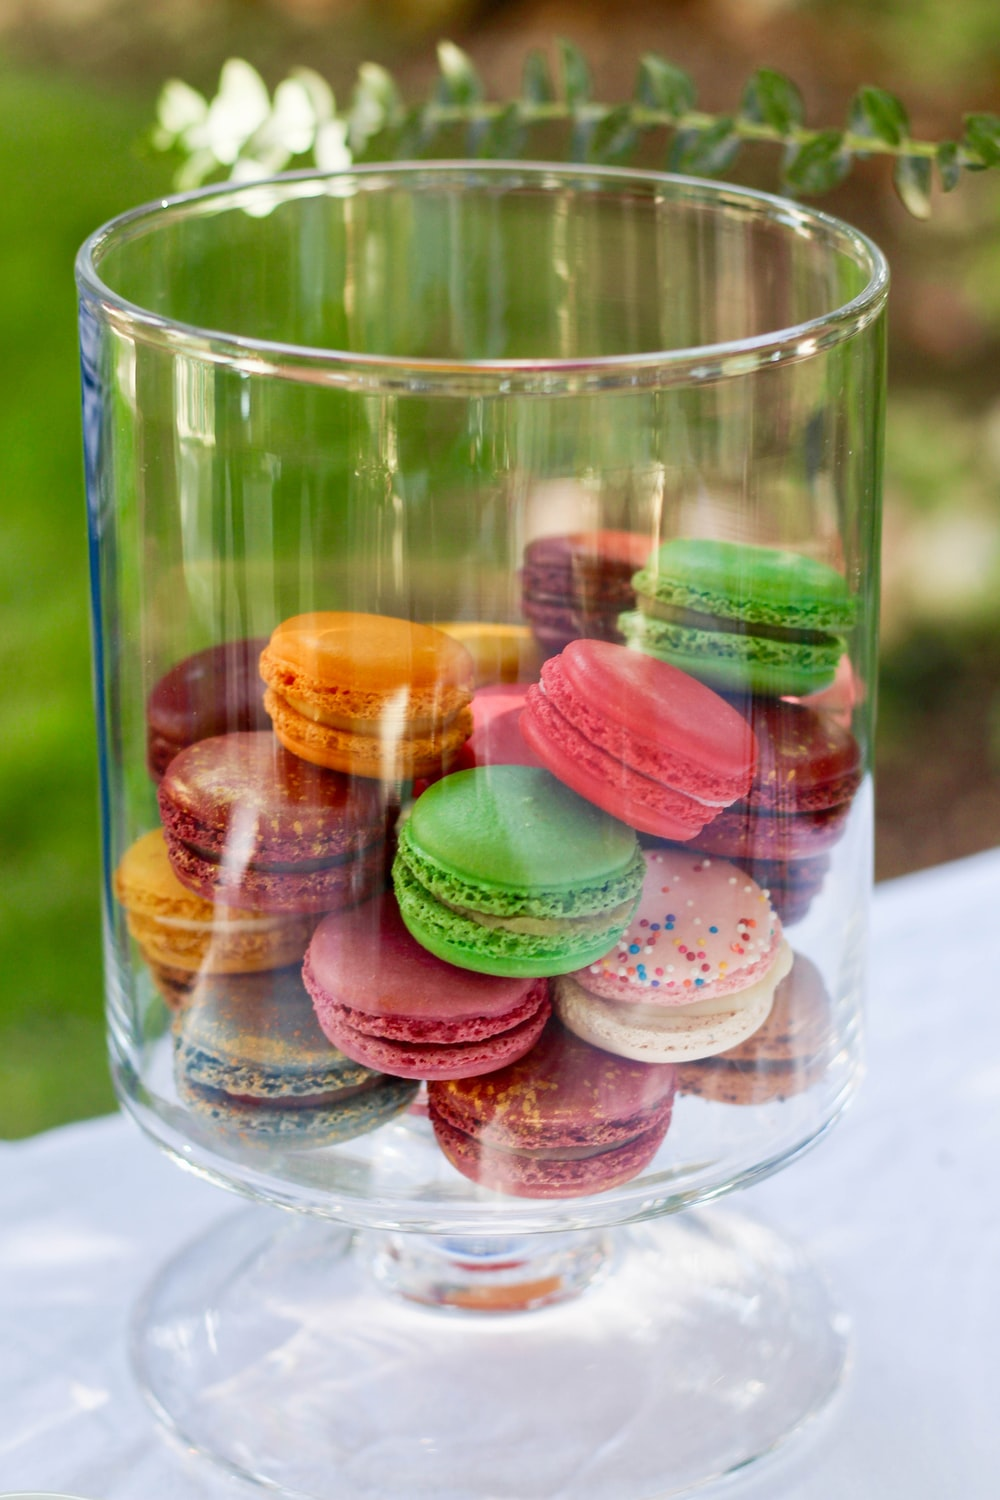 French macaroons inside clear glass container on top of table